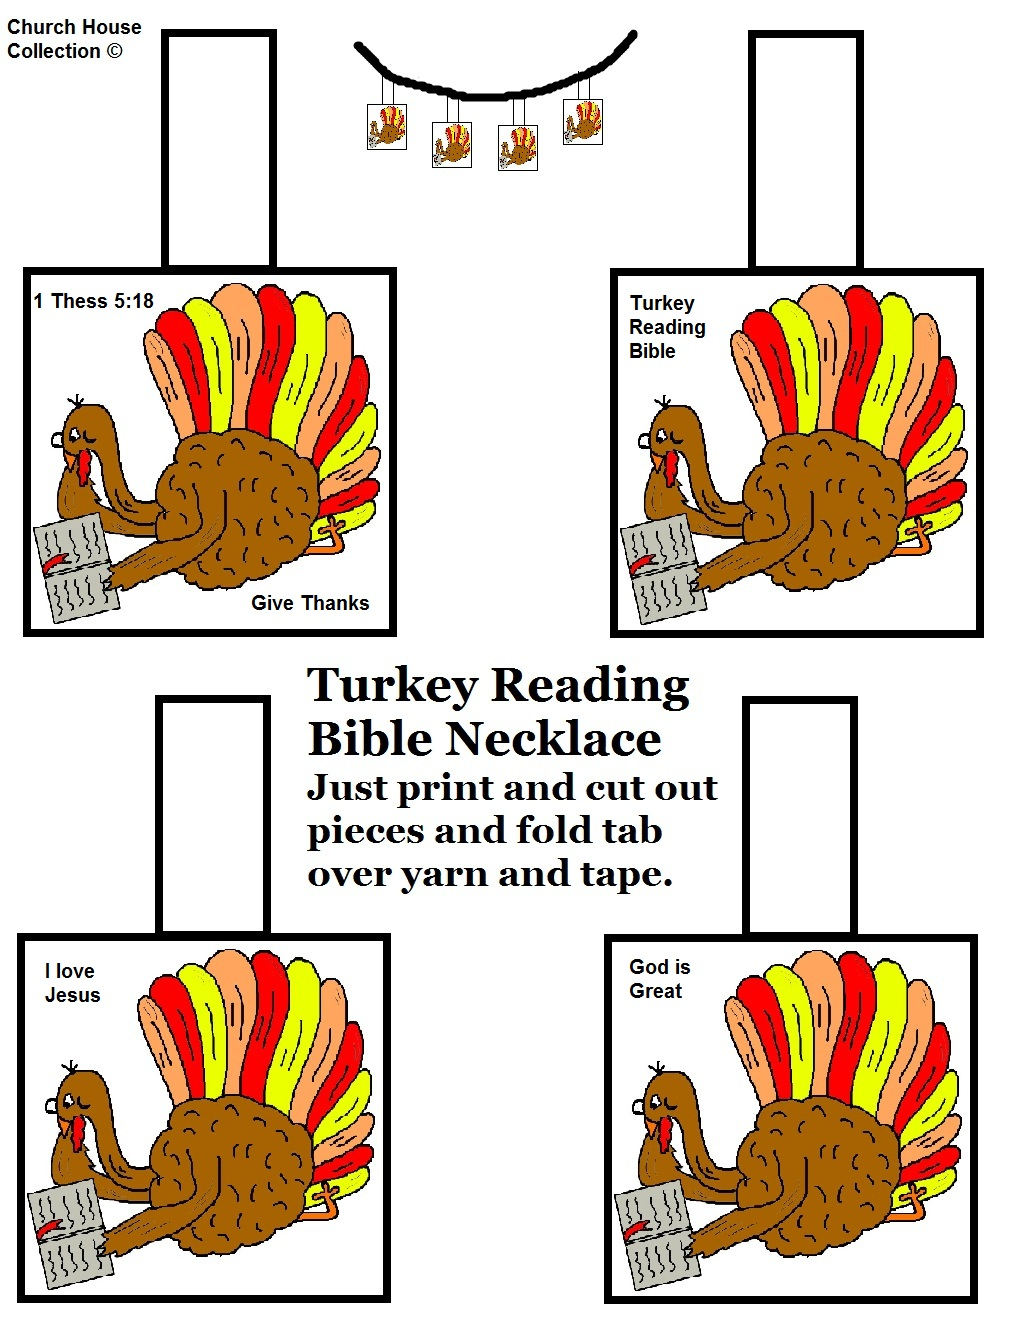 Give thanks in all things sunday school lesson for Thanksgiving crafts for kids church